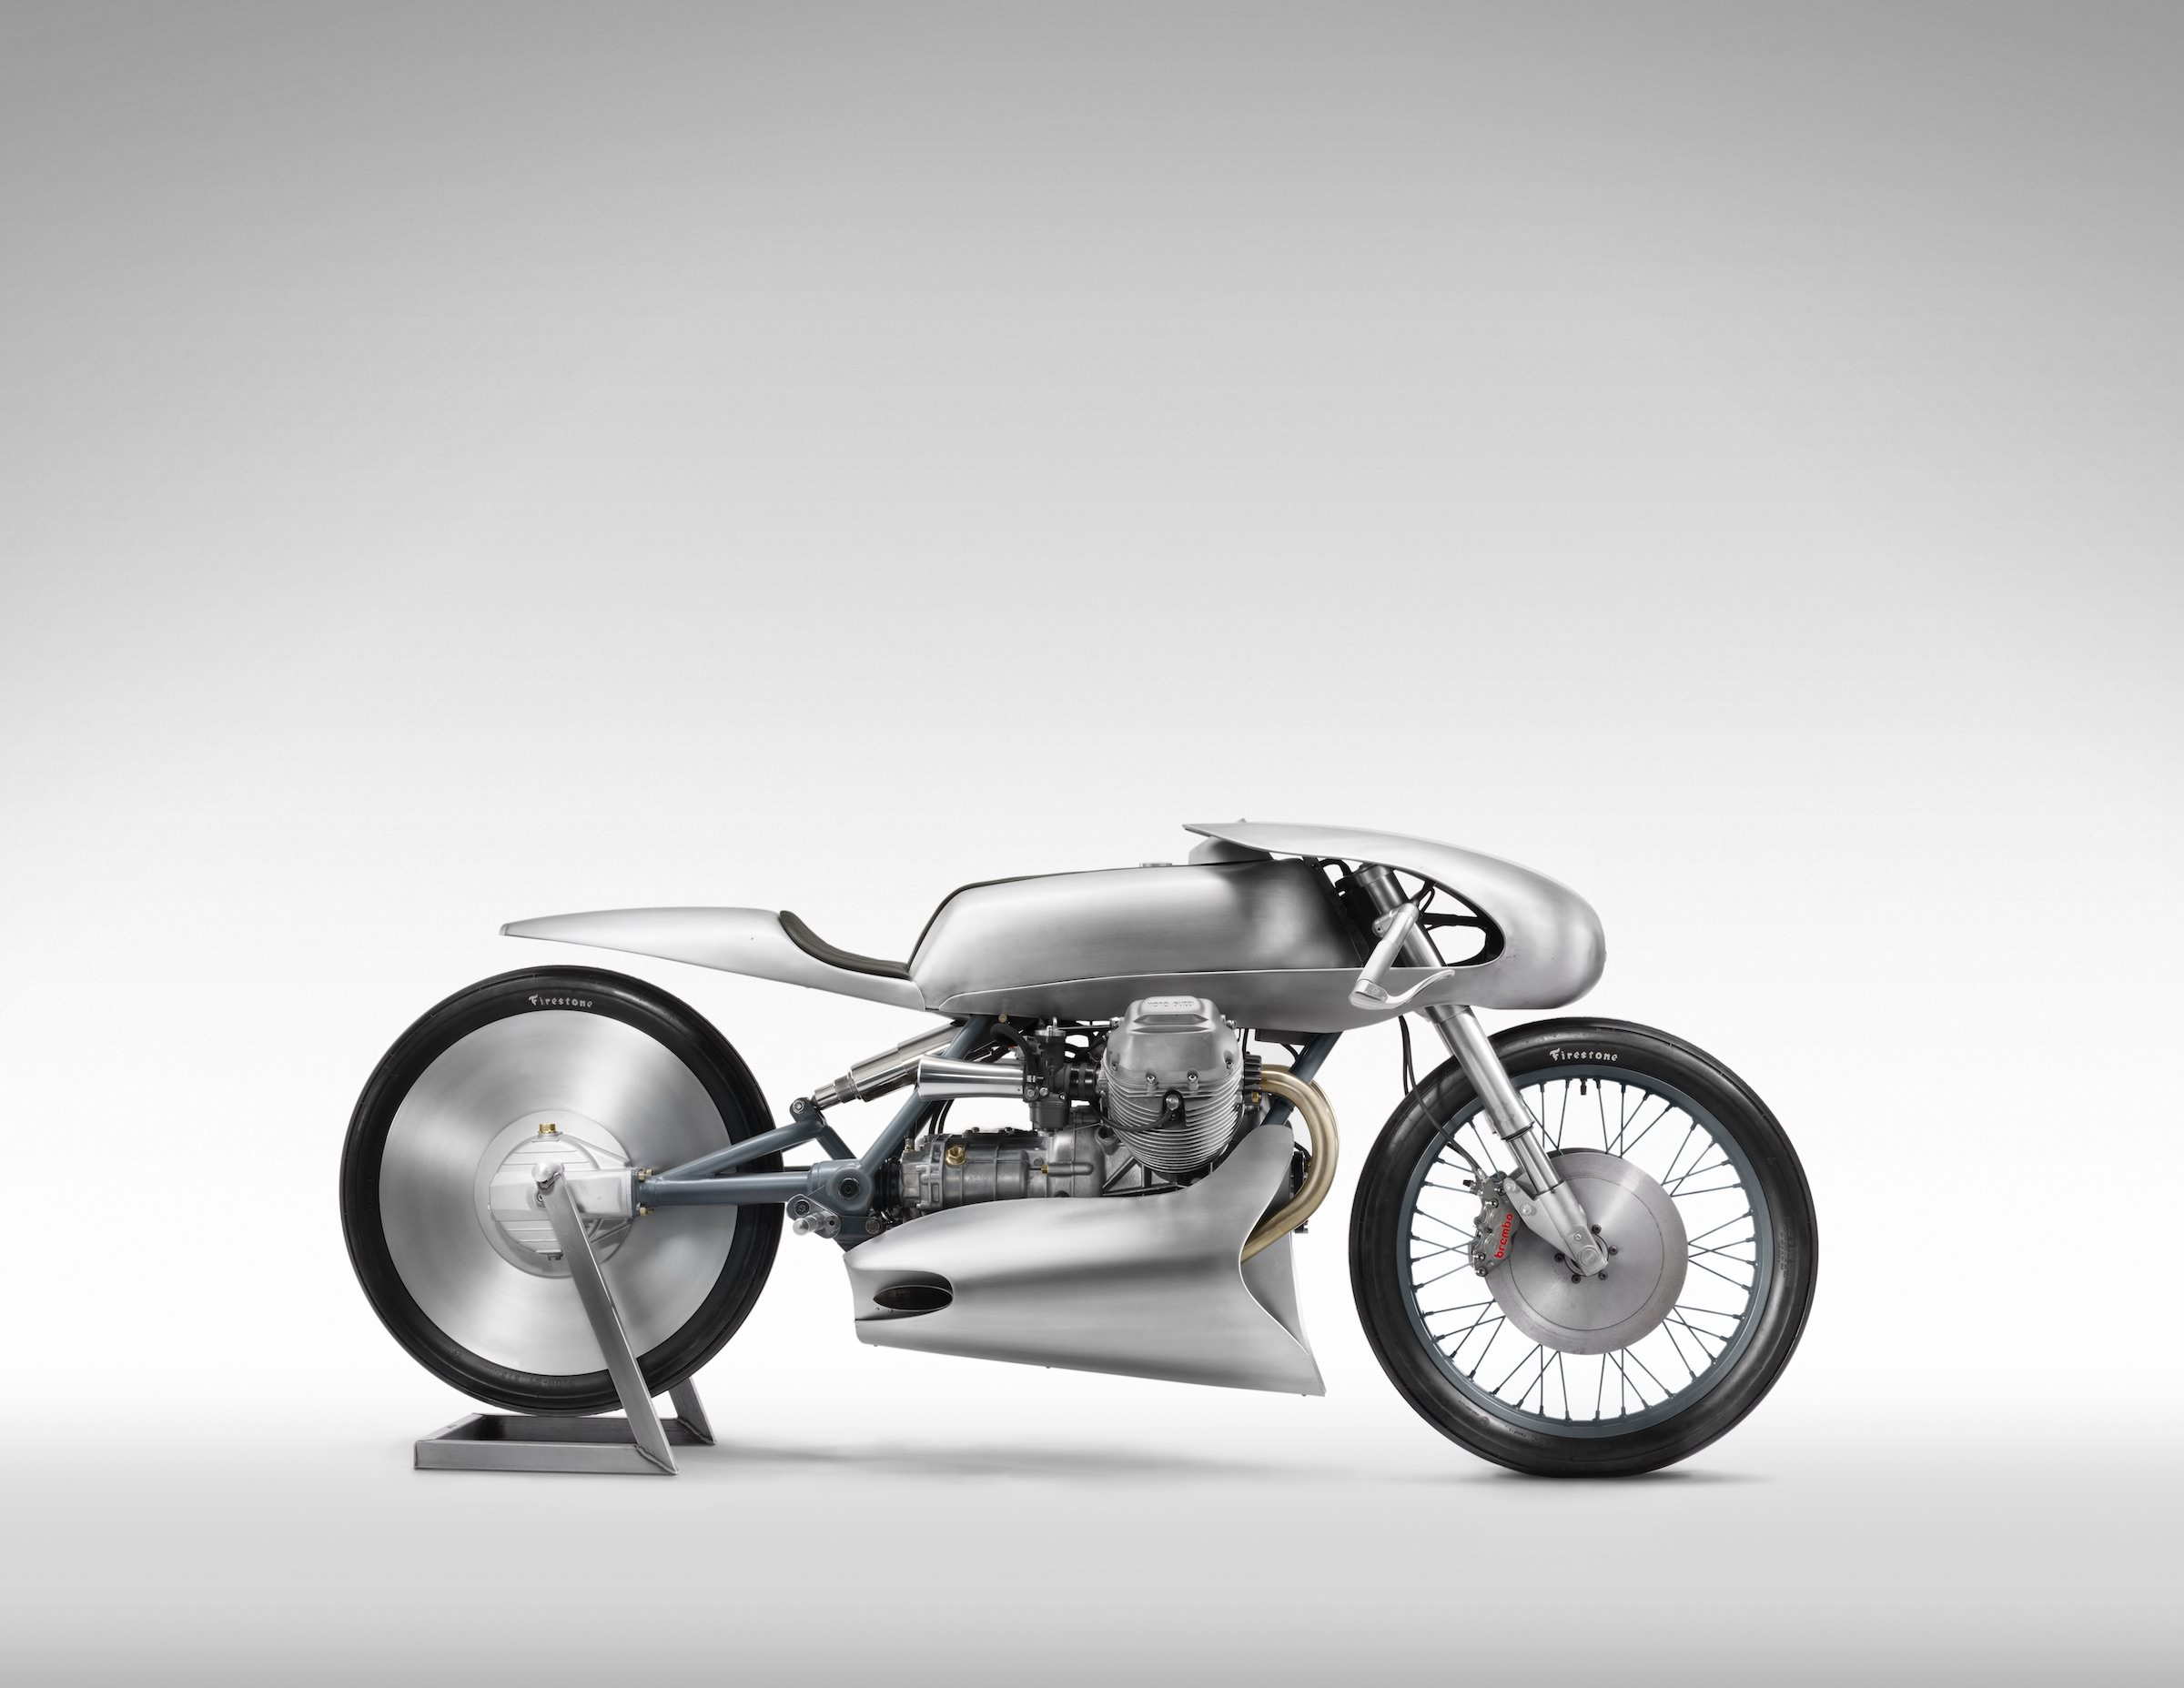 death-machines-of-london-airforce-moto-guzzi-custom-motorcycle-4.jpeg